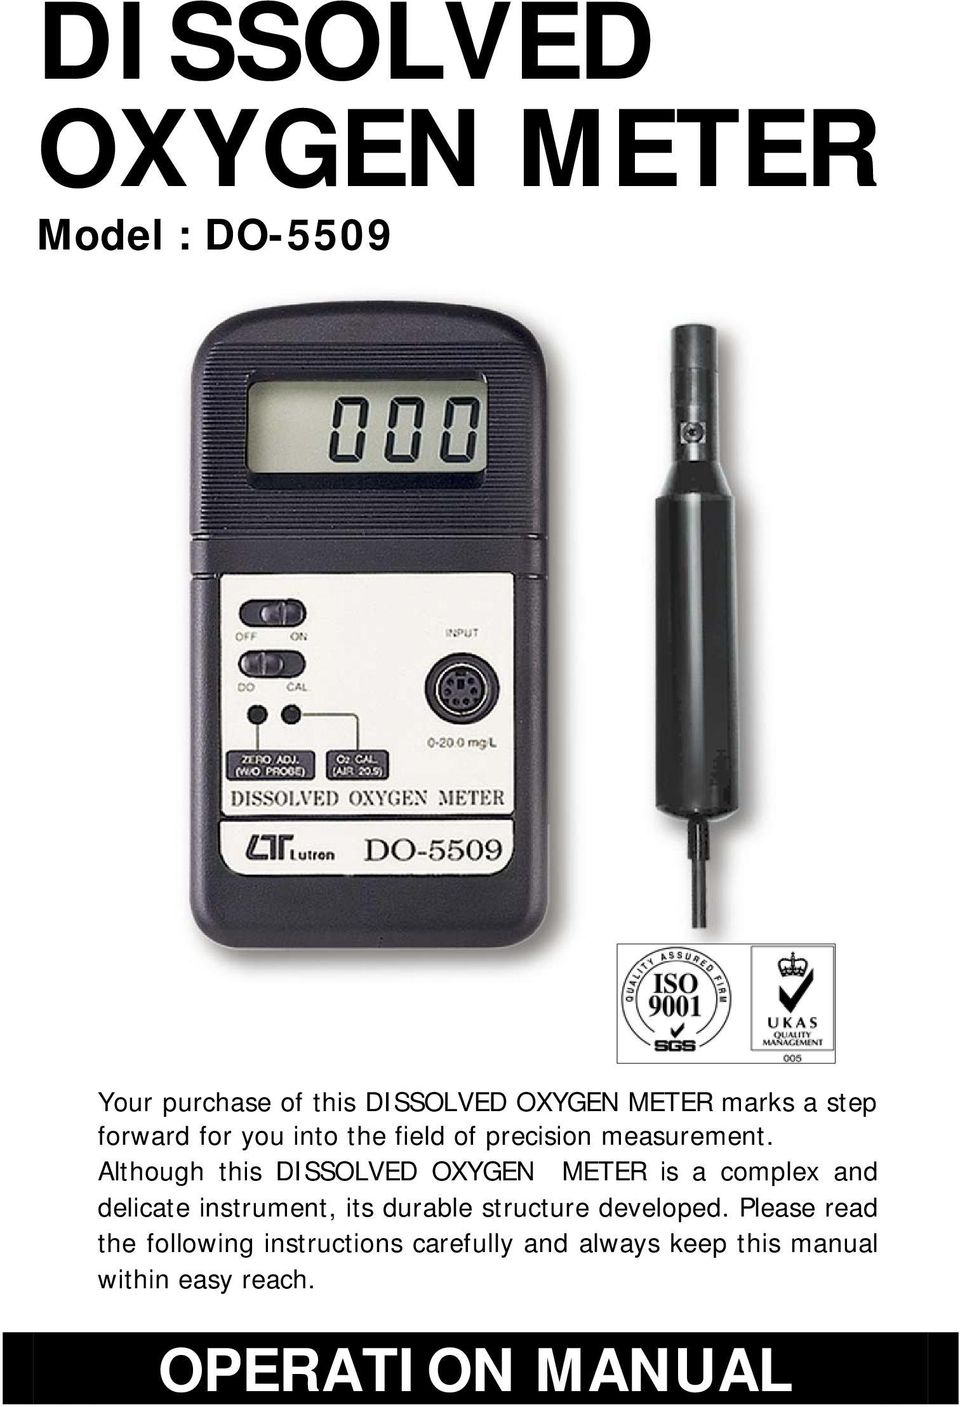 Although this DISSOLVED OXYGEN METER is a complex and delicate instrument, its durable